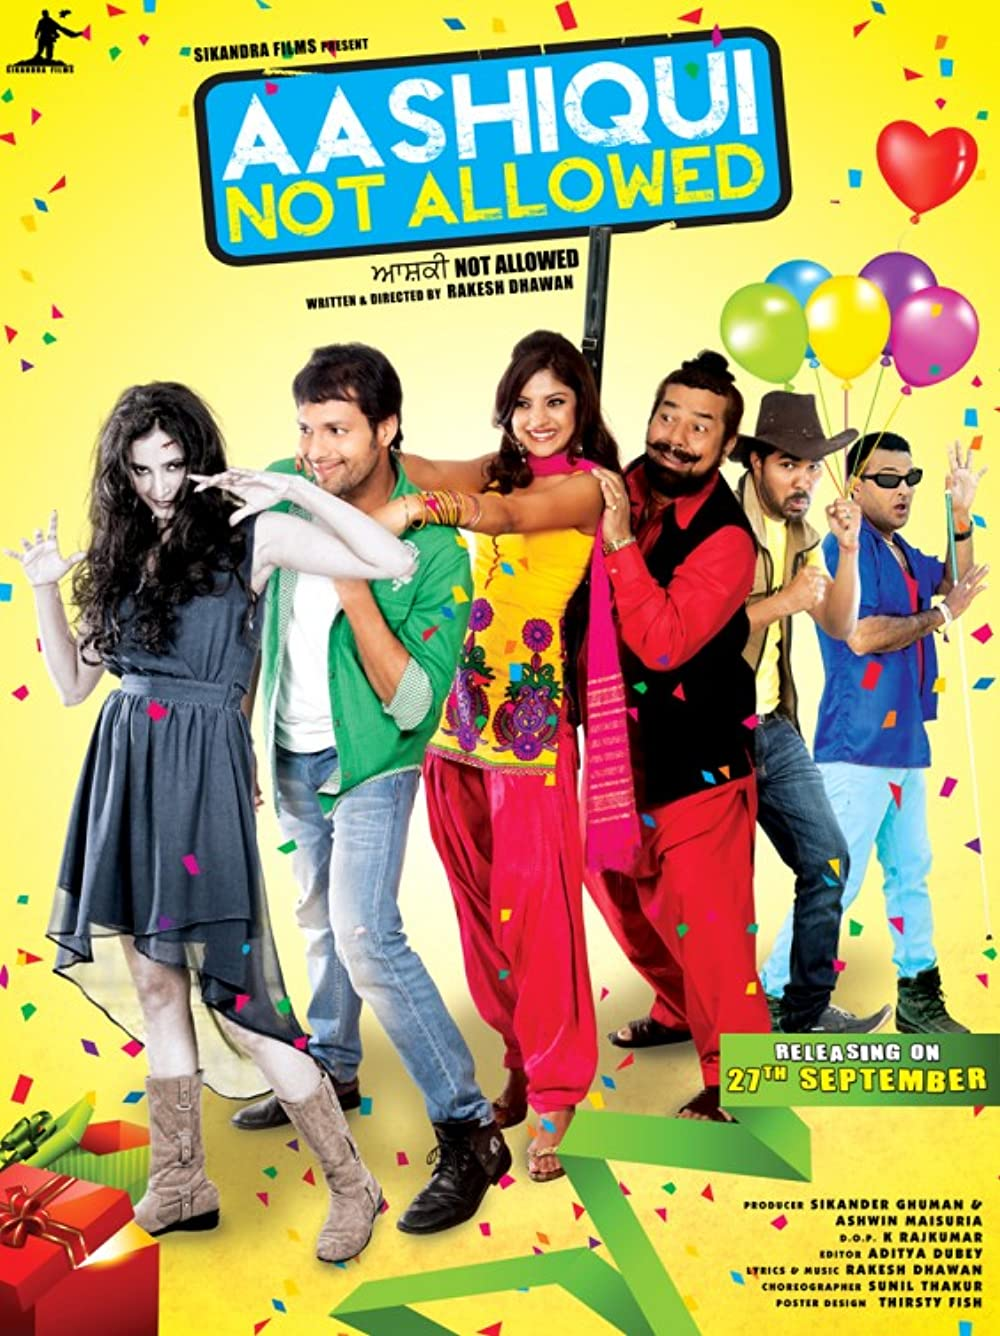 Aashiqui Not Allowed 2013 Punjabi 1080p HDRip ESubs 1.8GB Download